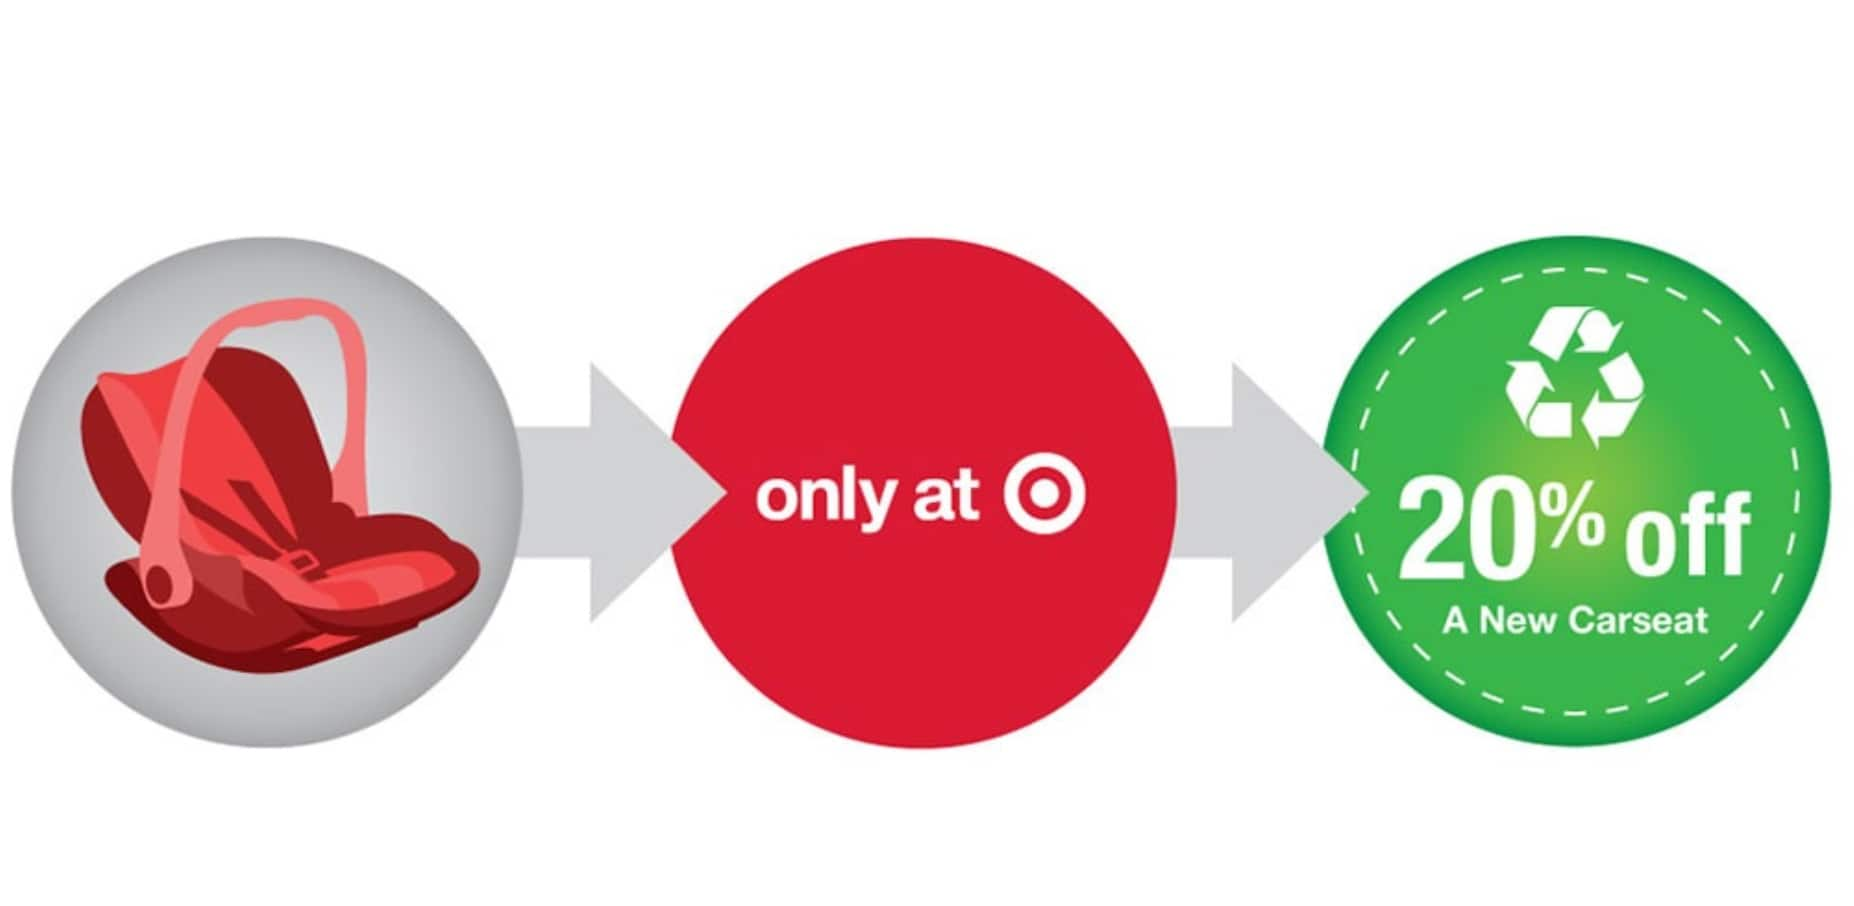 Target Car Seat Trade-In Event: Recycle & Get 20% Off Coupon ...